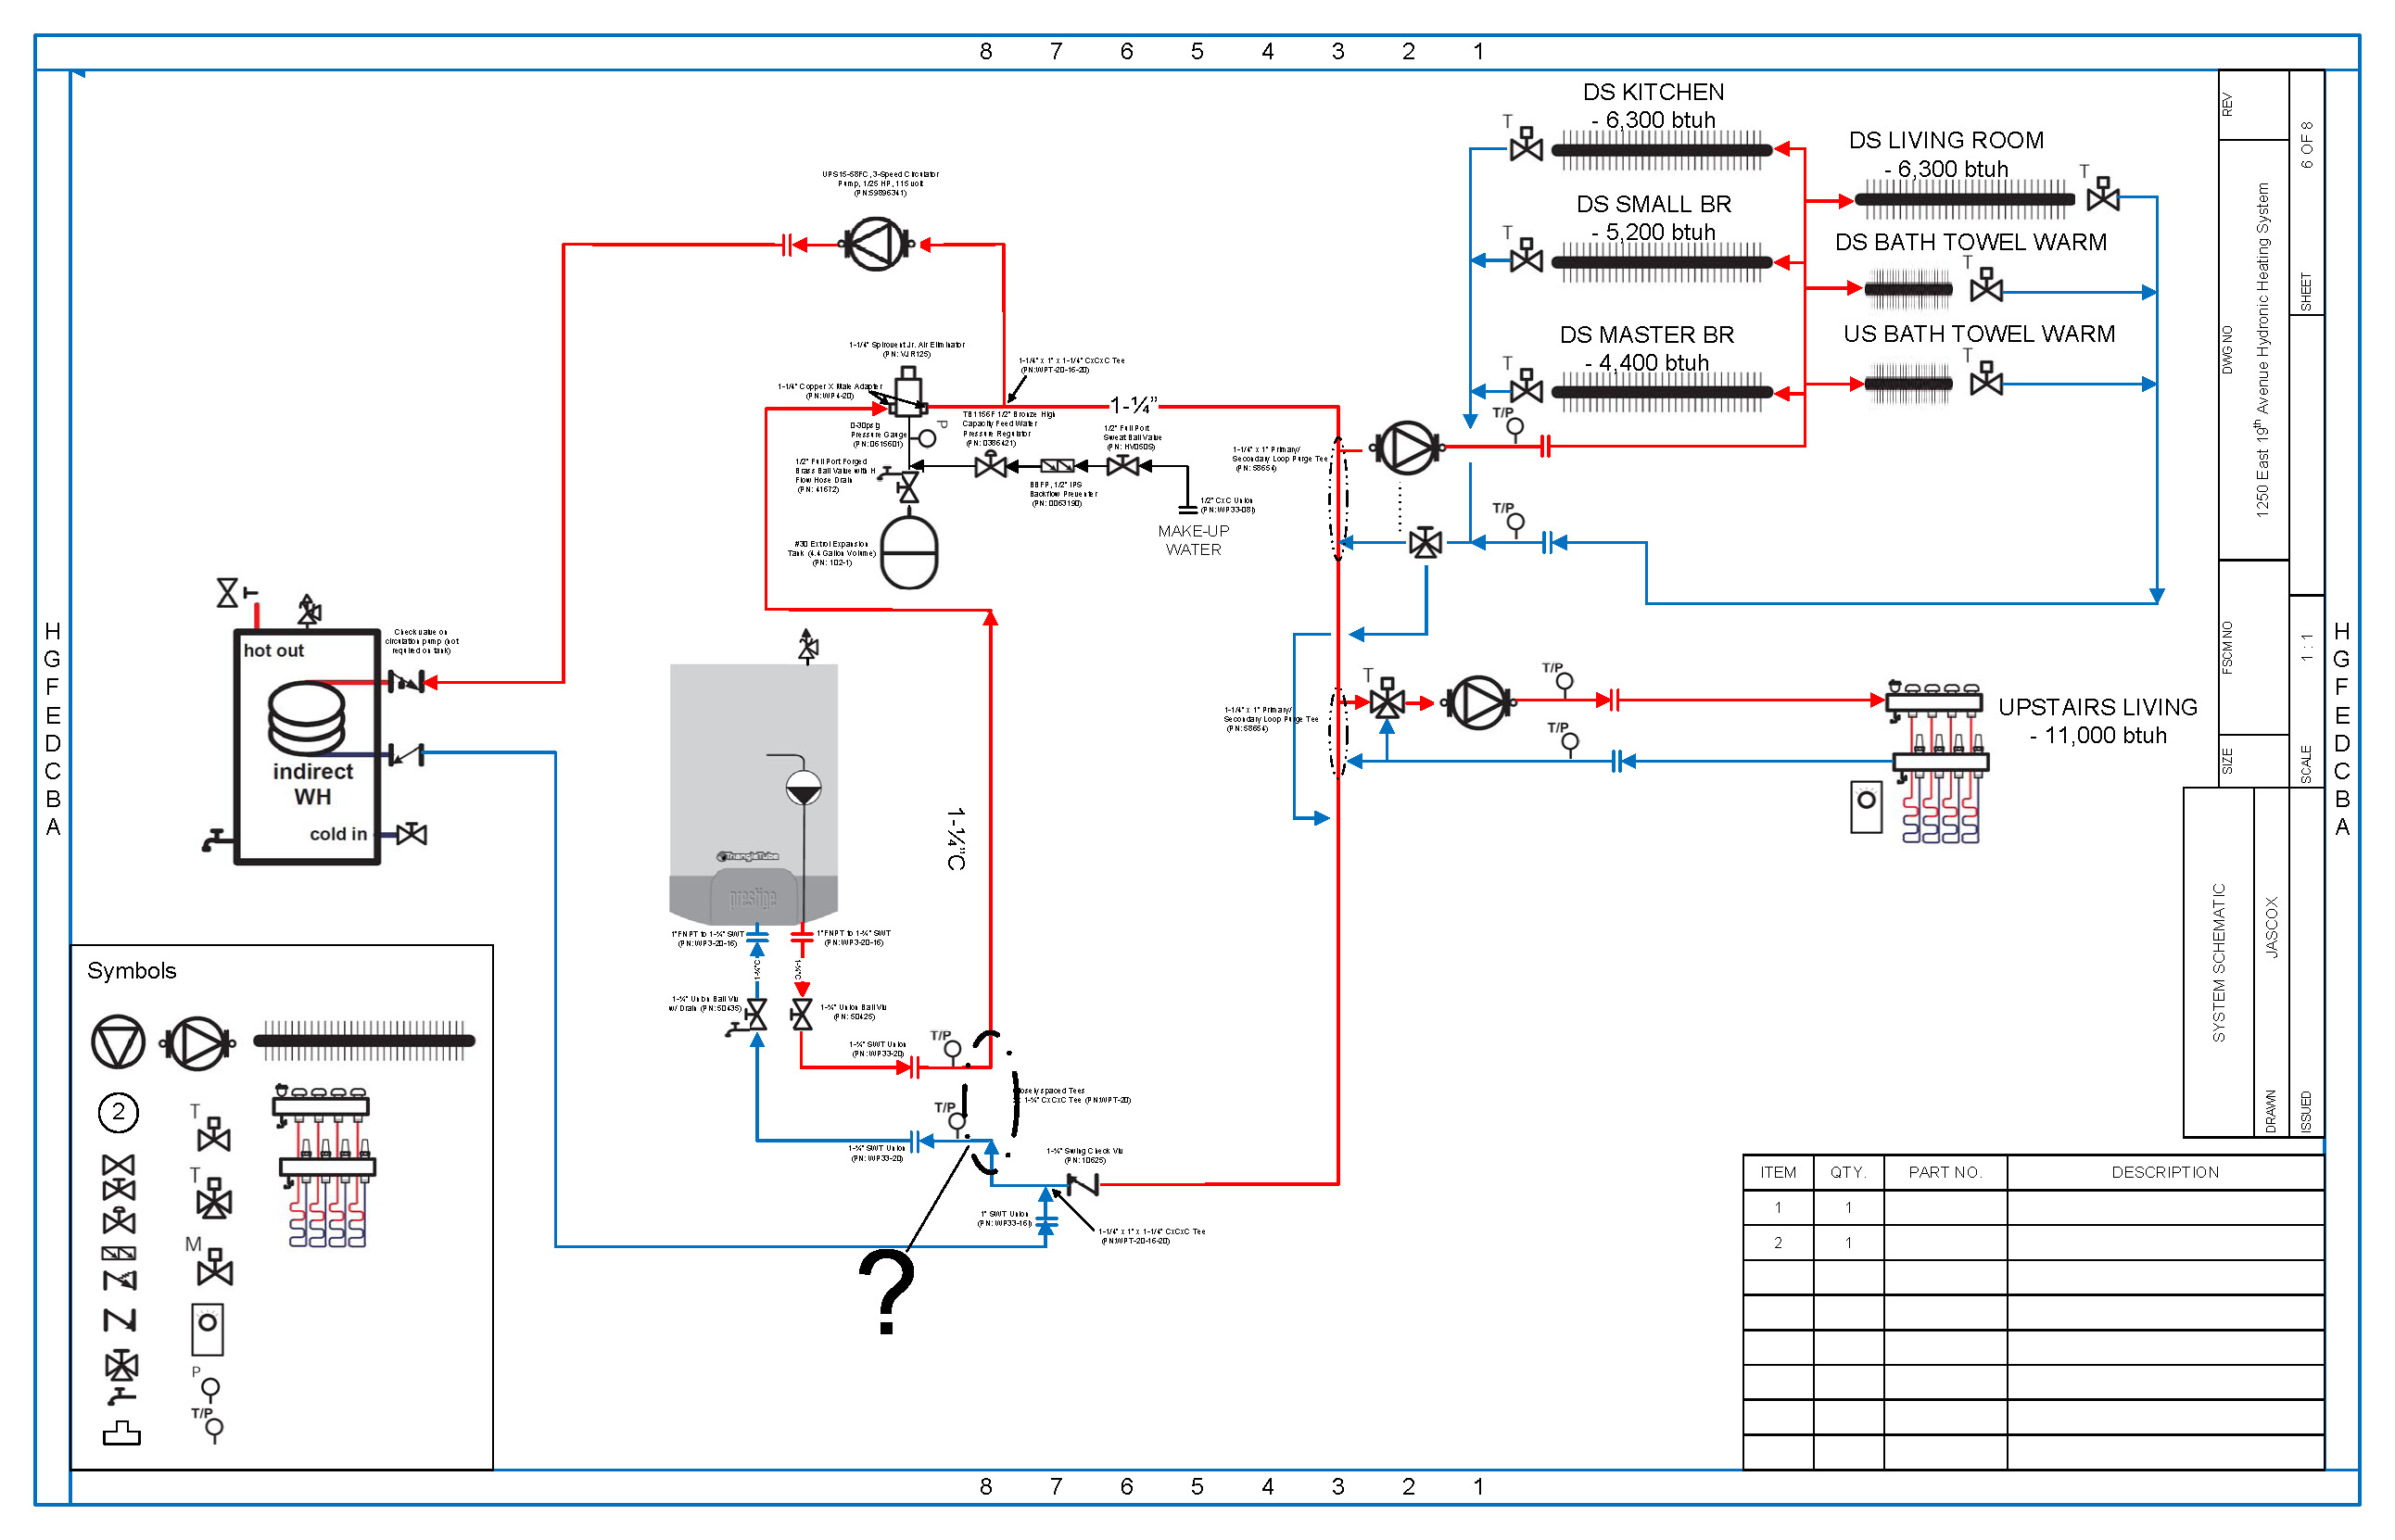 navien boiler loop diagram burnham boiler diagrams elsavadorla